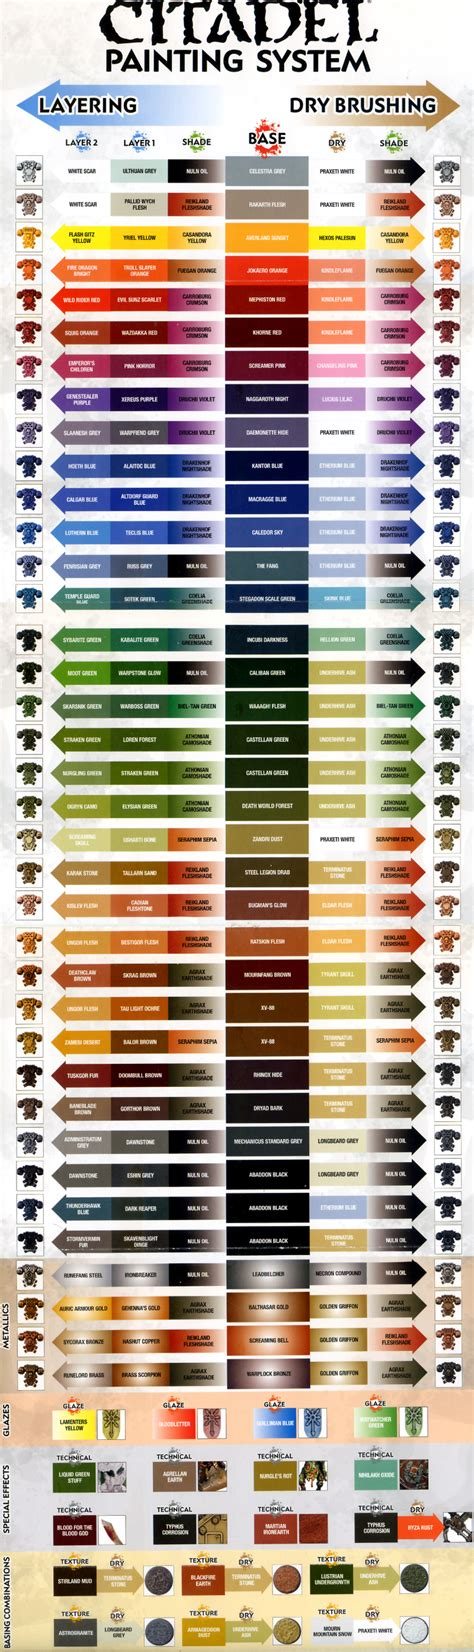 paint colors list tutorial painting guide citadel painting chart